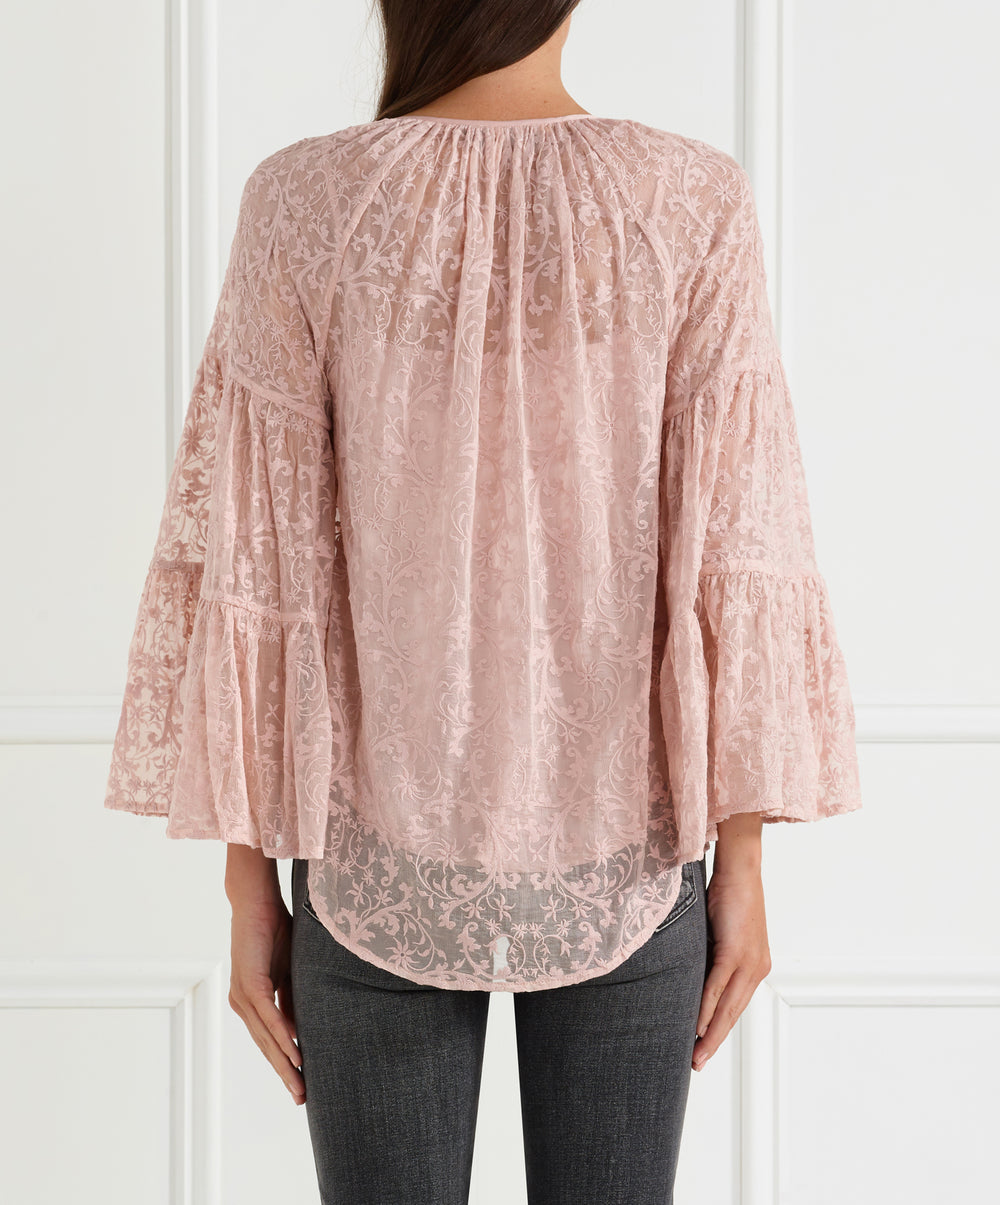 Everlasting Silk Dramatic Sleeve Blouse